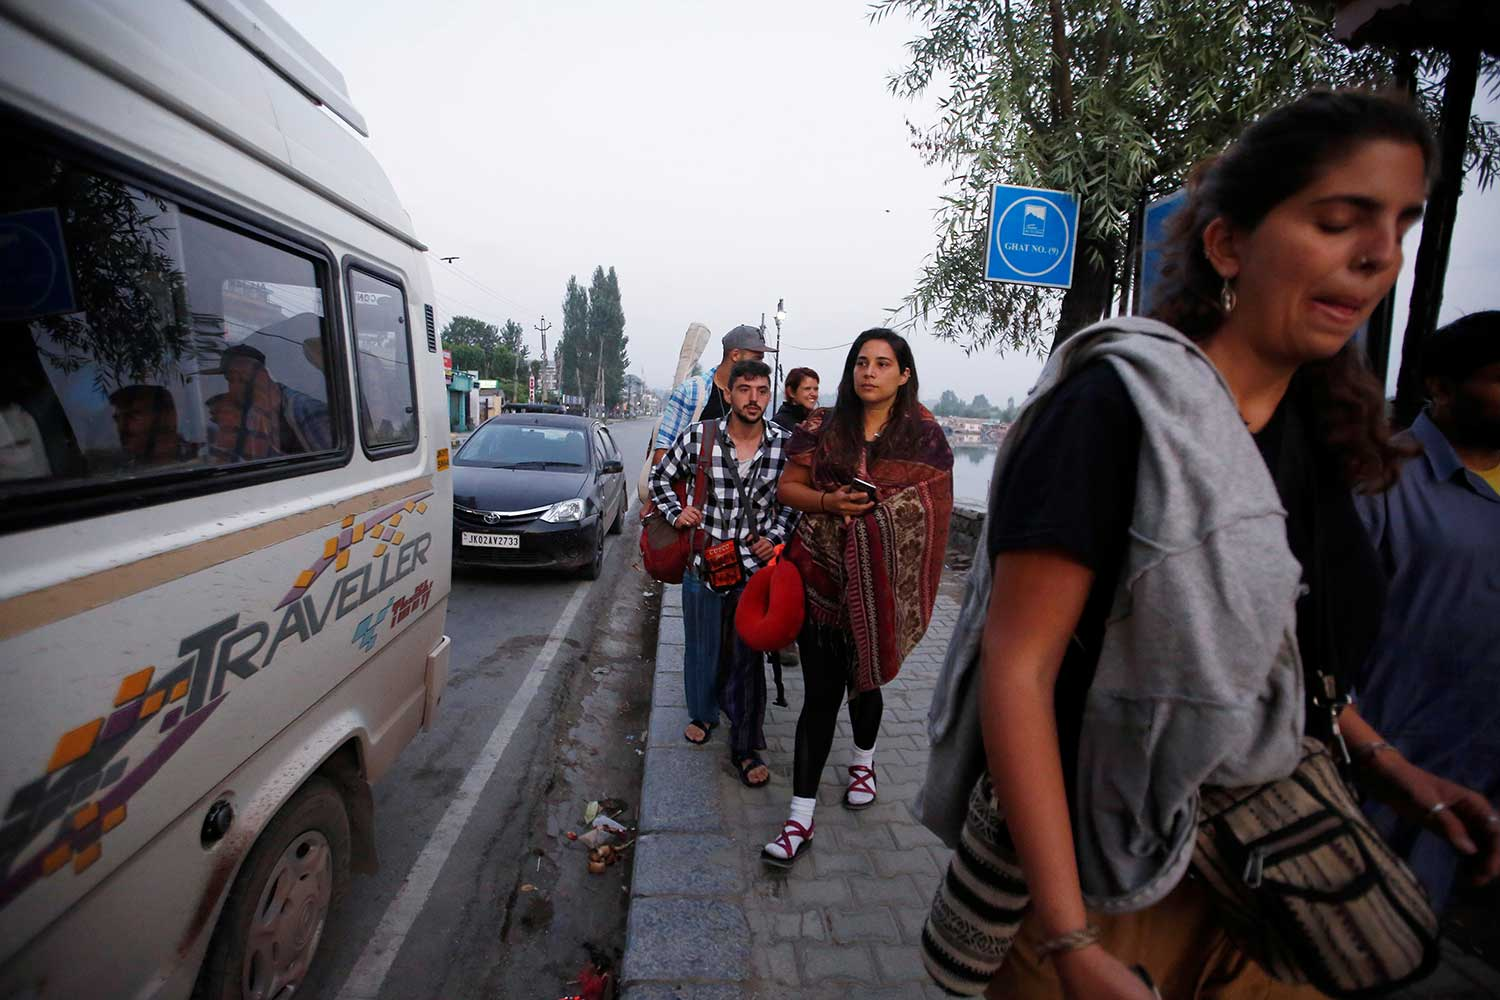 India orders students, tourists out of Kashmir for security